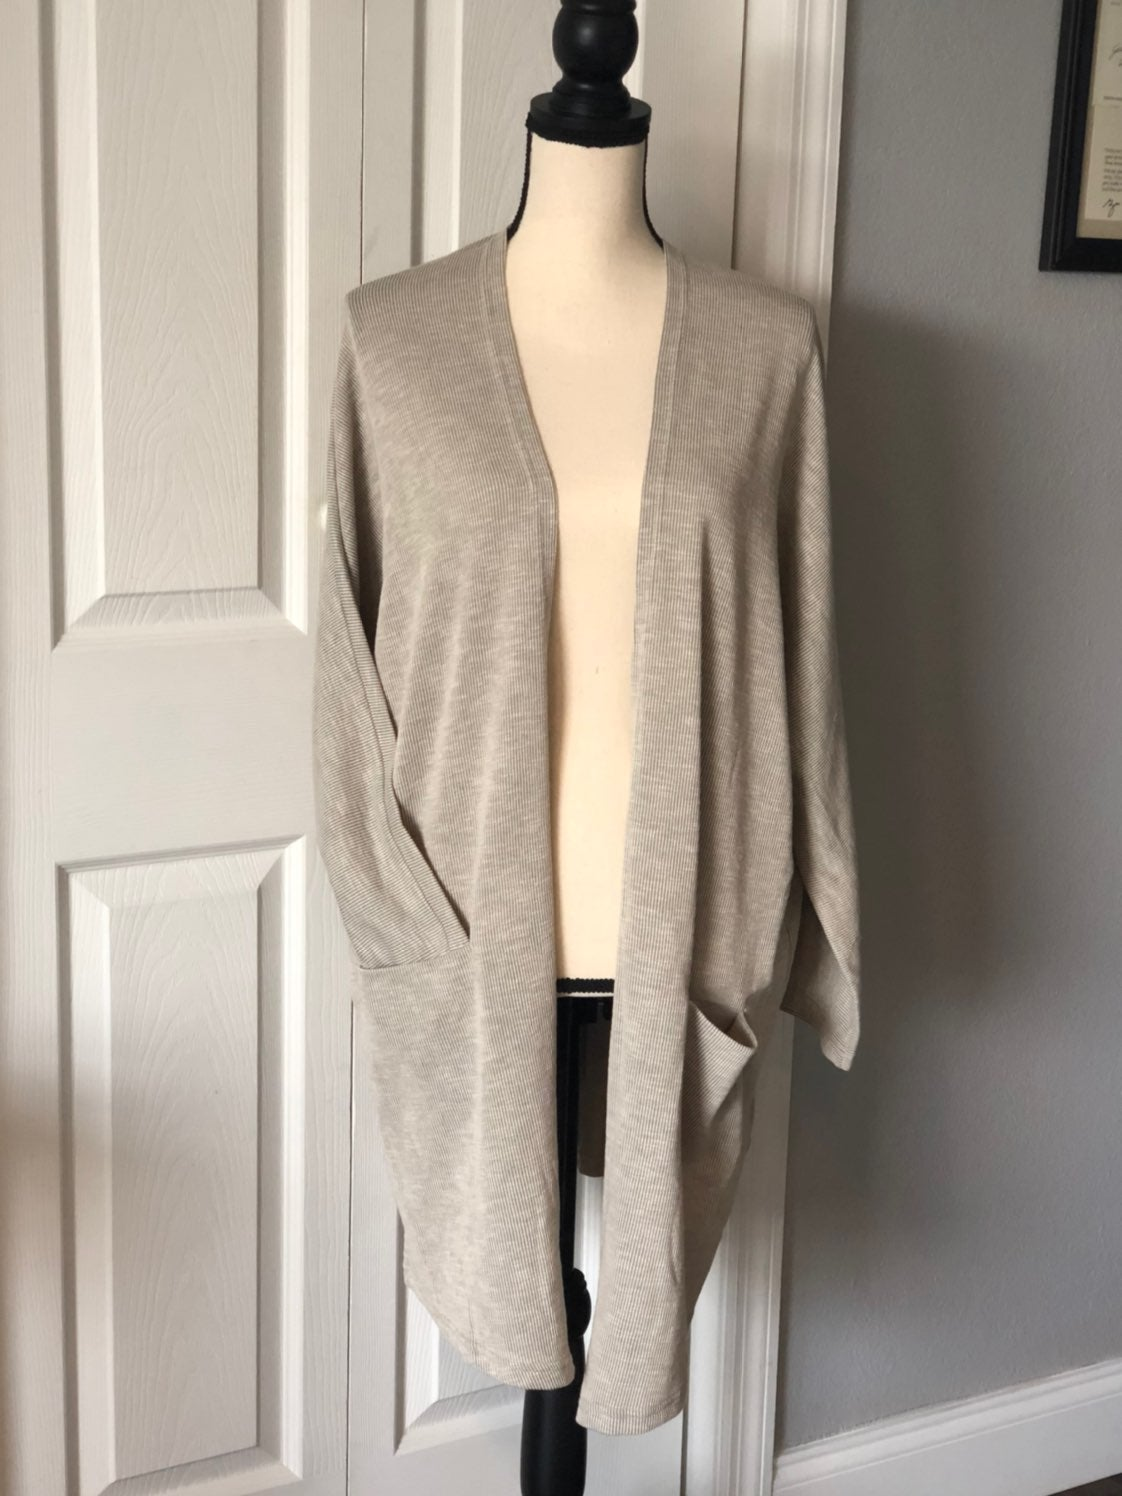 Donni long cadigan sweater One size sz S